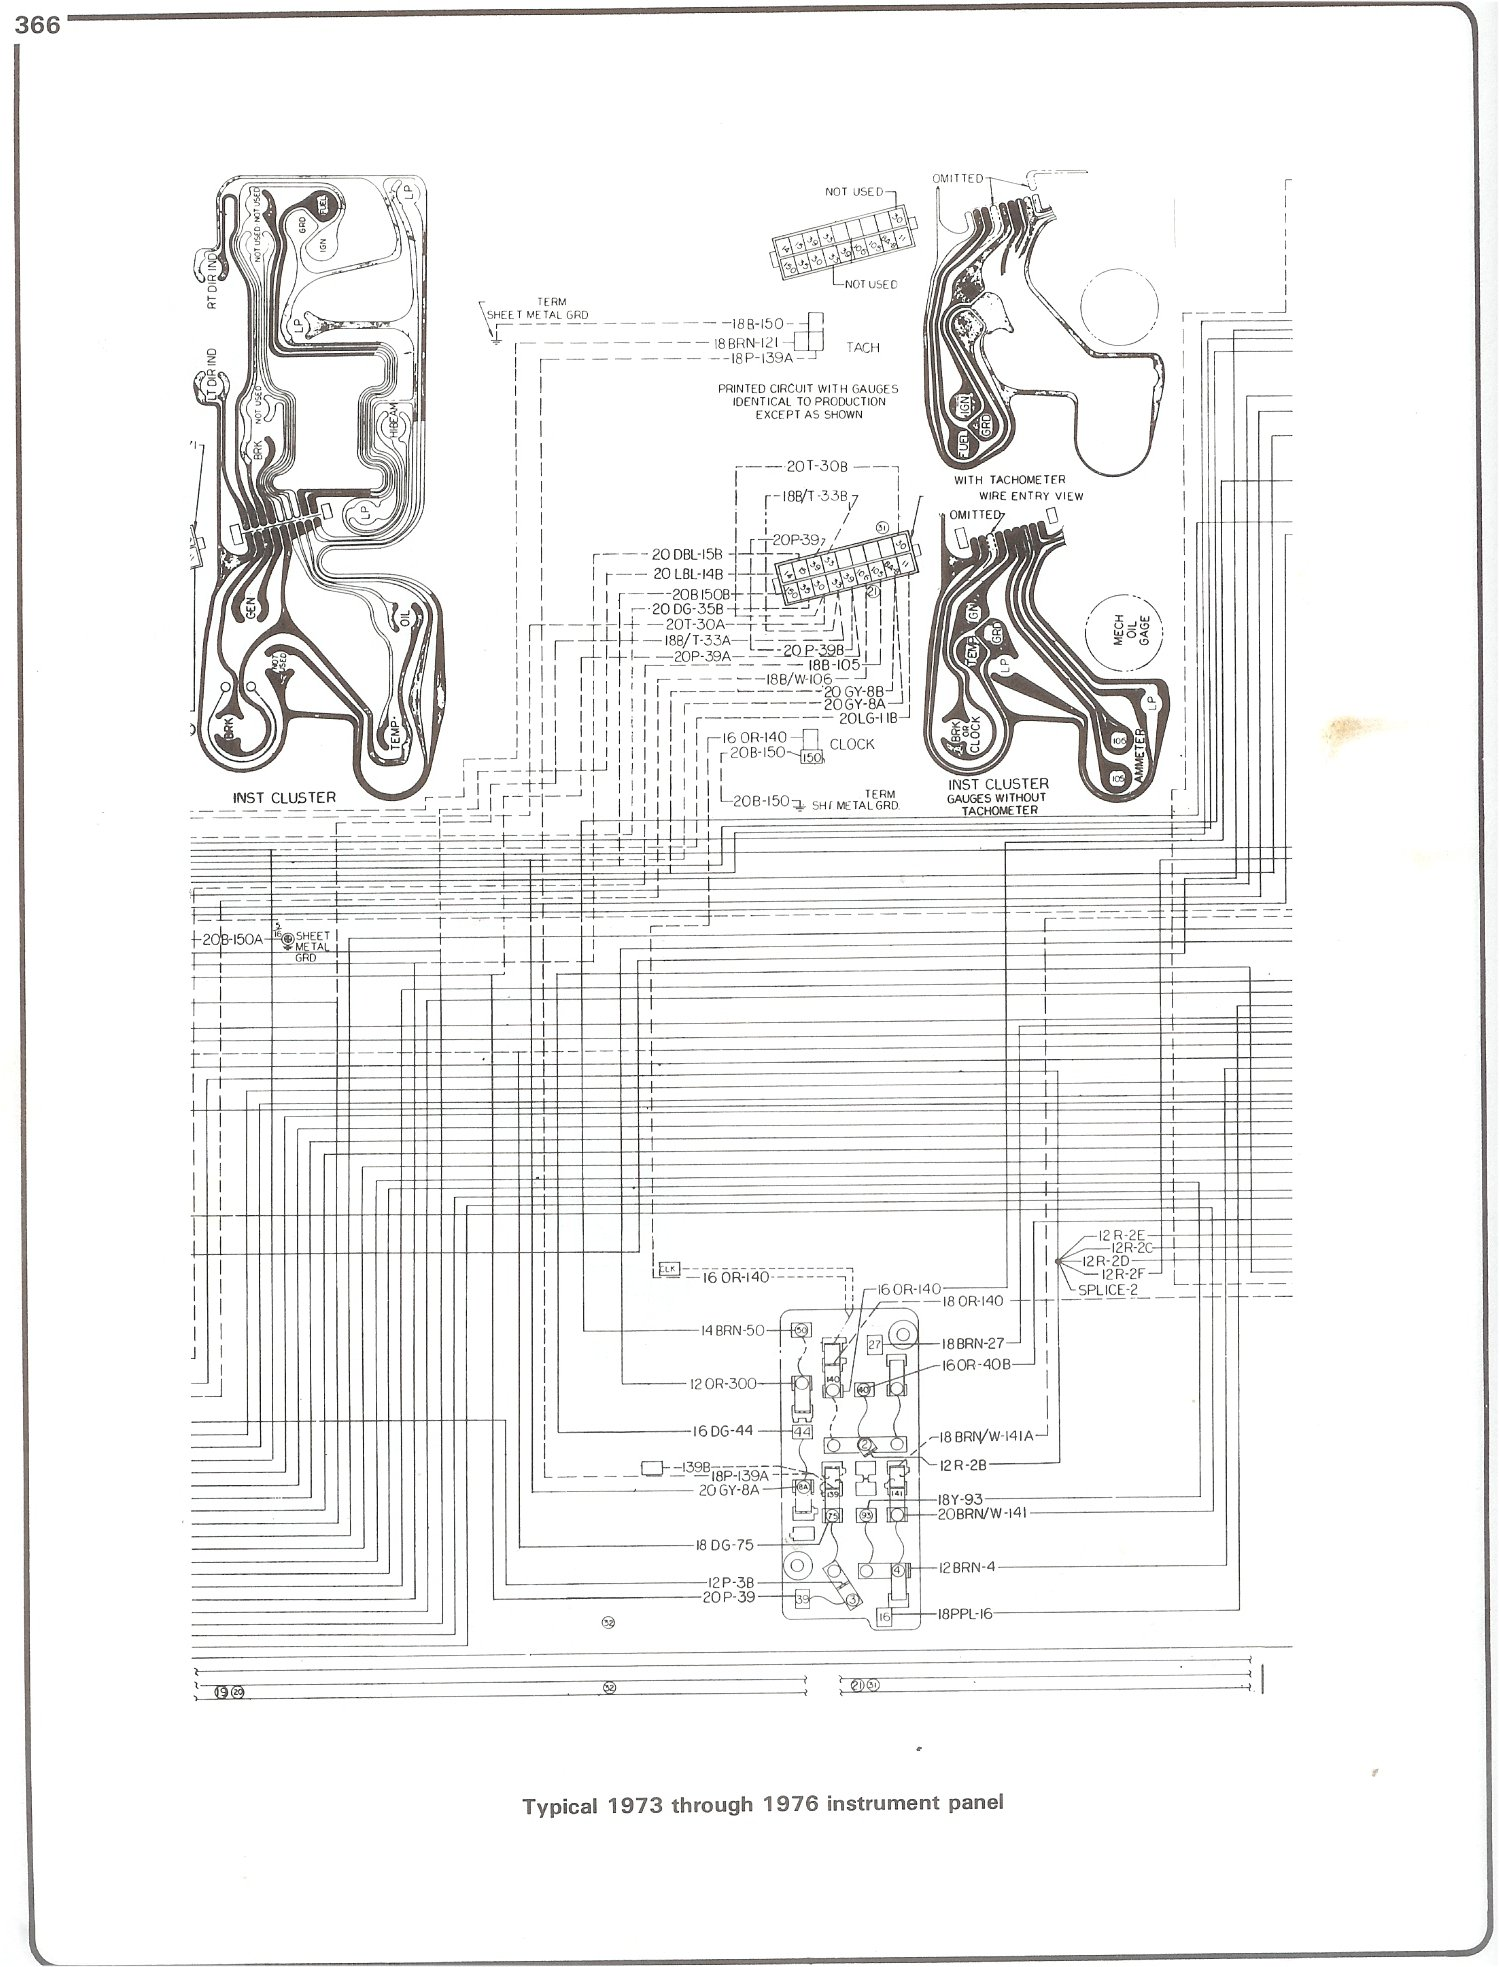 73 76_instrument complete 73 87 wiring diagrams 1990 Chevy Truck Wiring Diagram at fashall.co